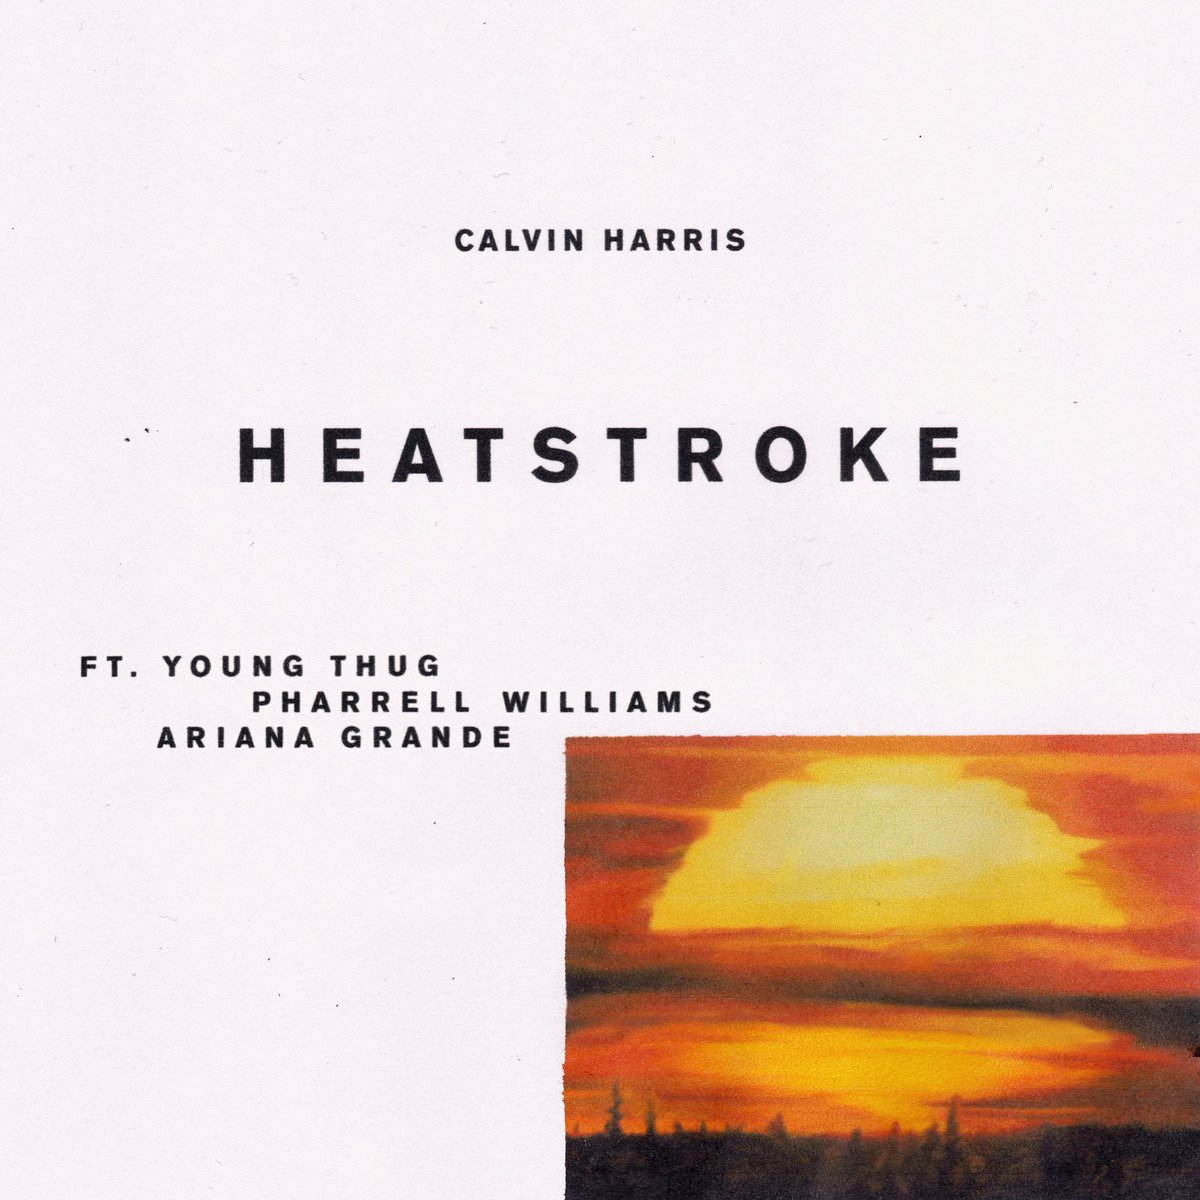 CALVIN HARRIS // YOUNG THUG // PHARRELL // ARIANA GRANDE https://t.co/...